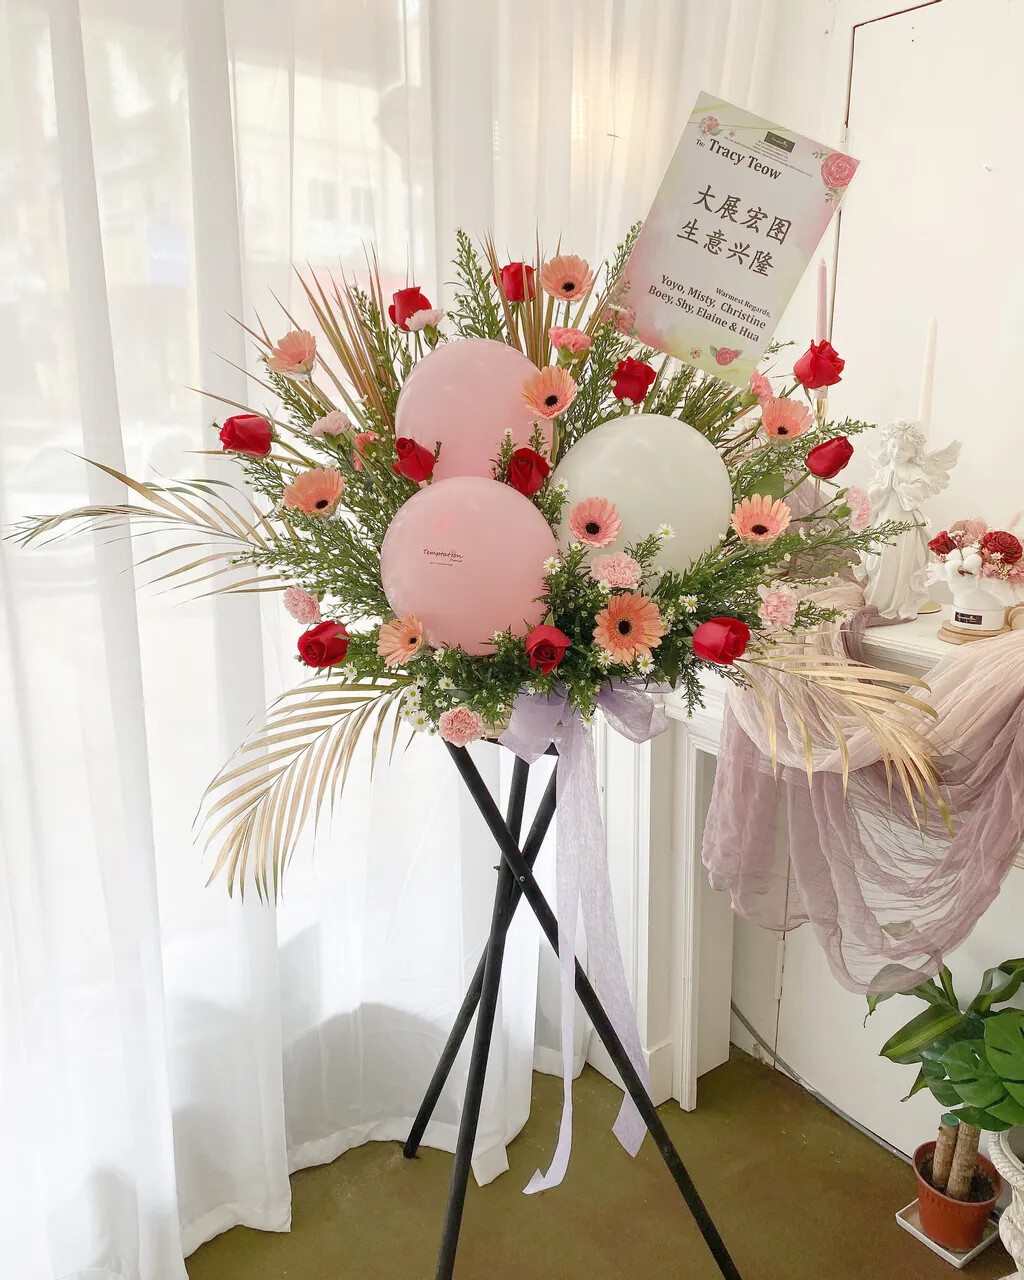 Moni Grand Opening Flower Stand (By: Temptation Florist from Seremban)